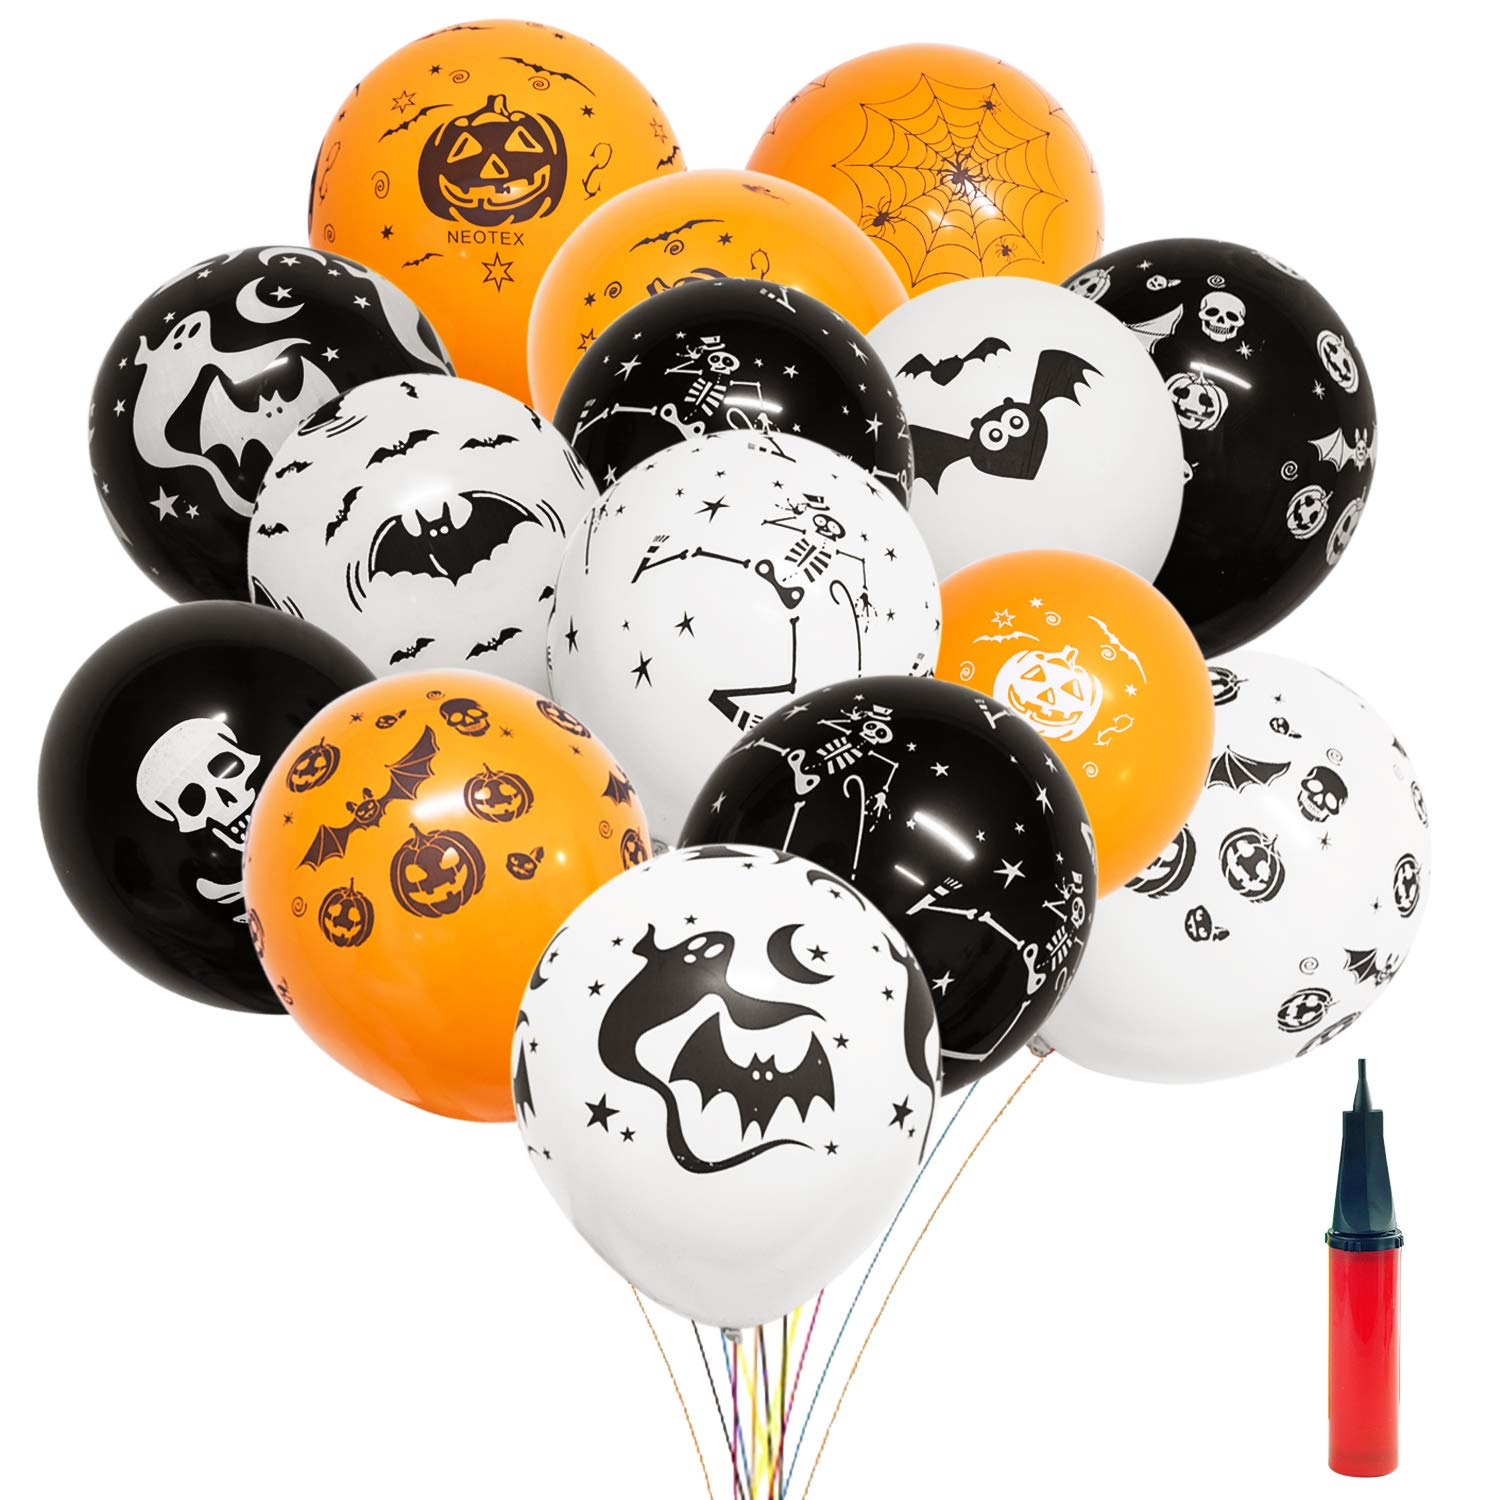 100 Pcs Thick Latex Halloween Balloons with A Free Pump, 12 Type Pumpkin Ghost Balloons Party Decorations Fullsexy